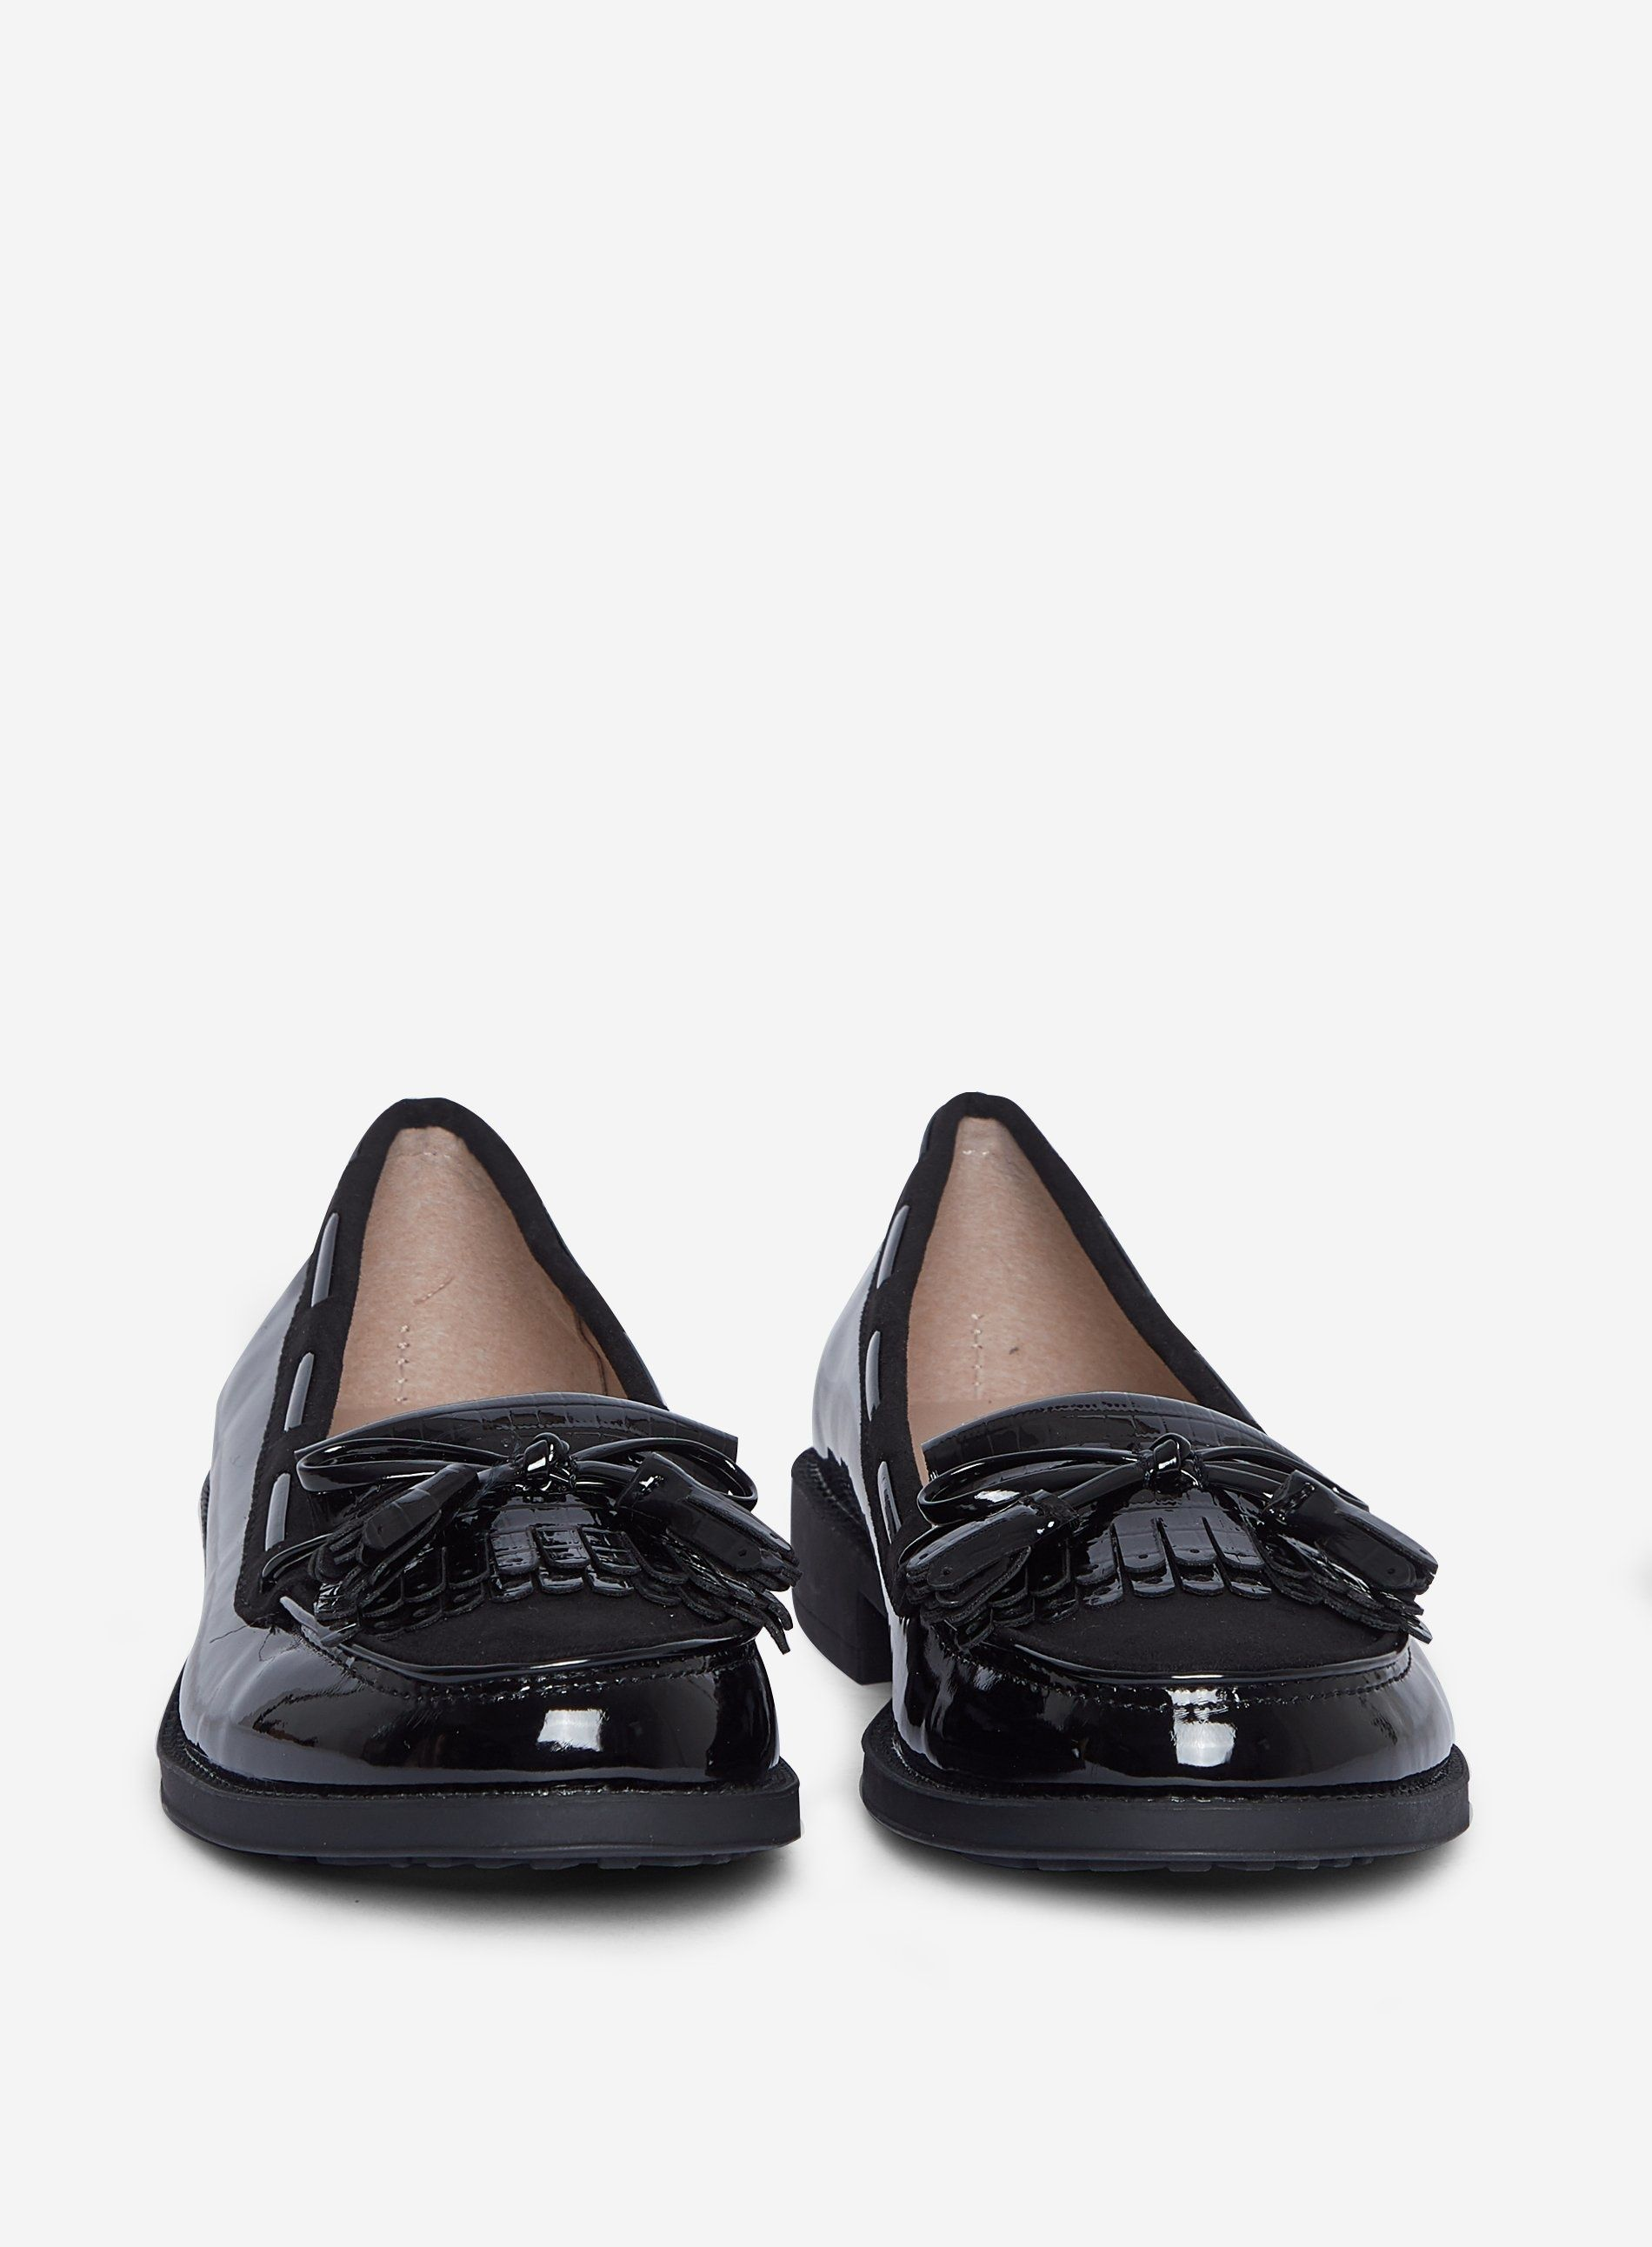 Dorothy Perkins Womens Black Patent Lexy Loafers Flats Slip On Shoes